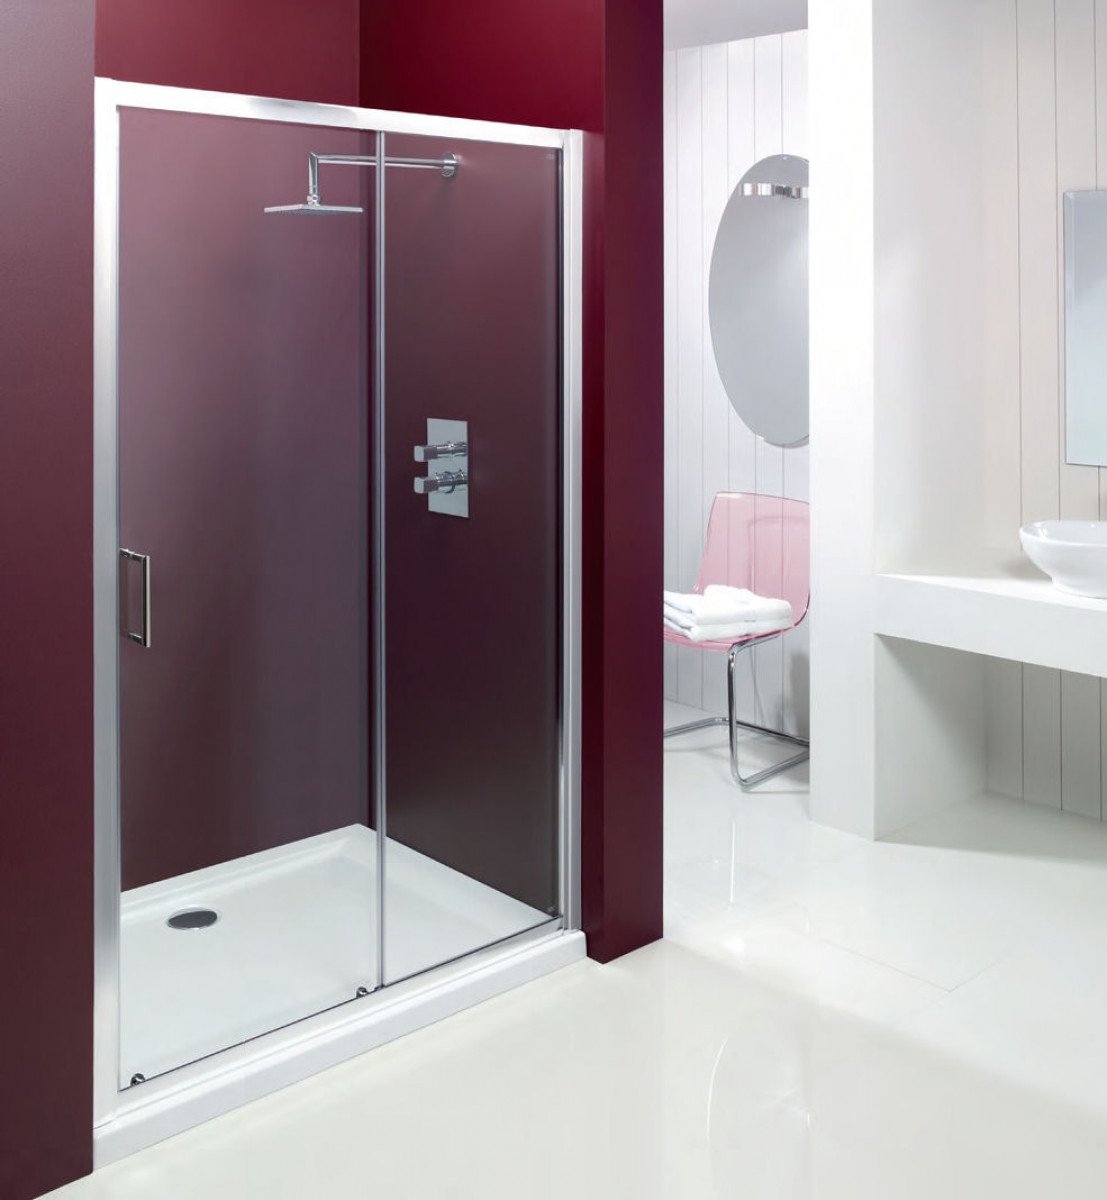 Merlyn vivid entree 1000mm sliding shower door for 1000mm shower door